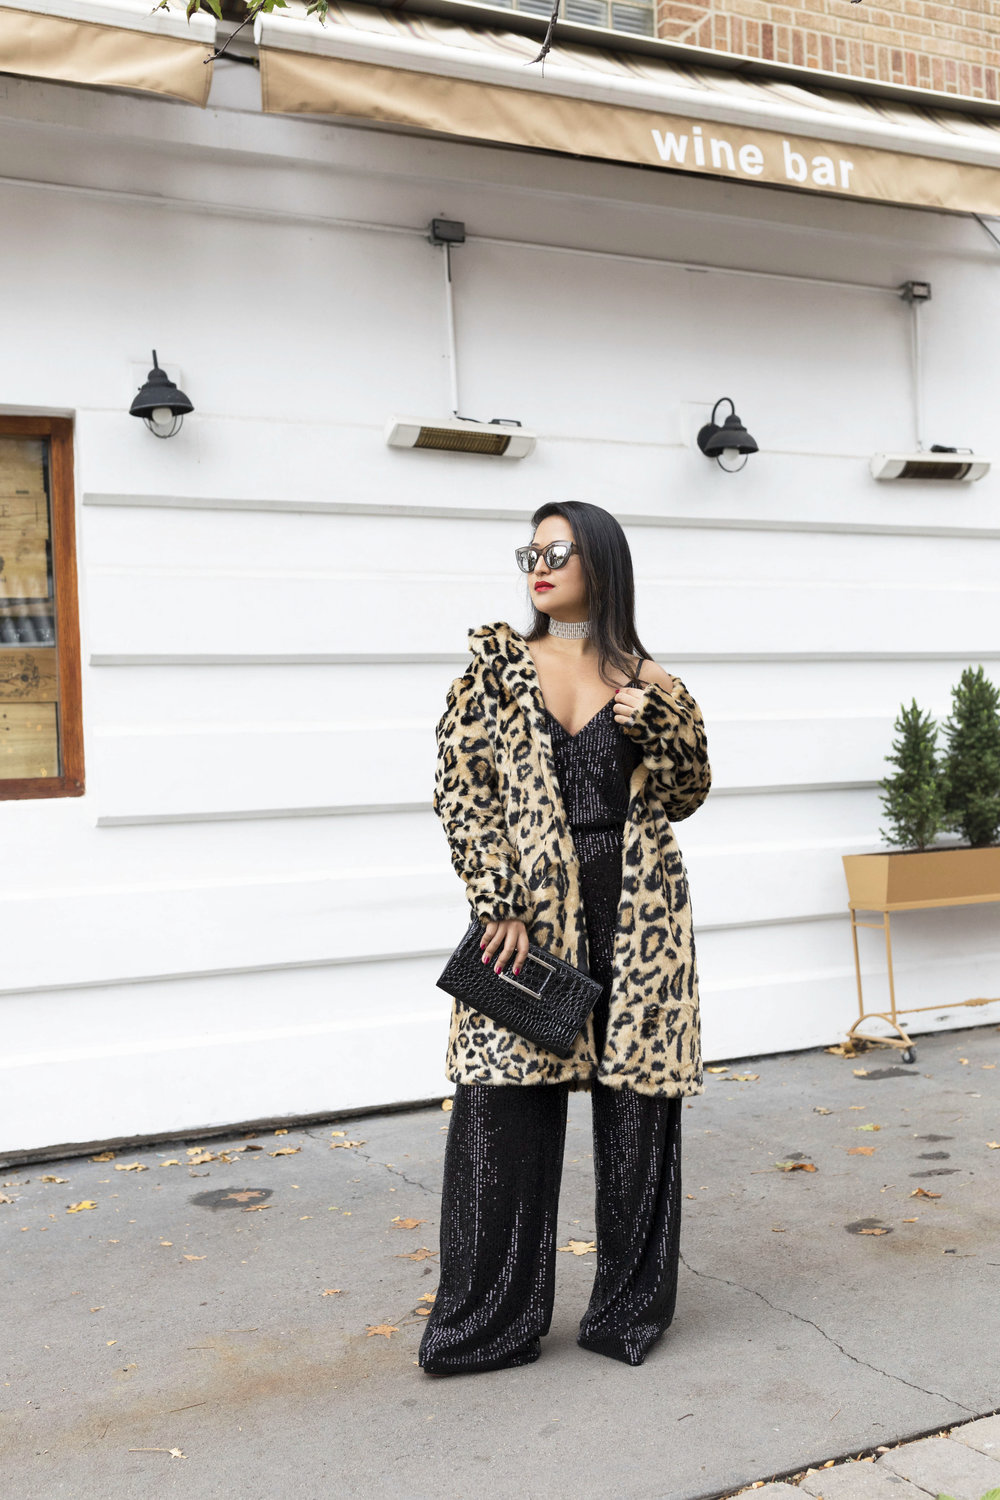 Krity S x New Years Eve Outfit x Sequin Jumpsuit and Cheetah Faux Fur8.jpg